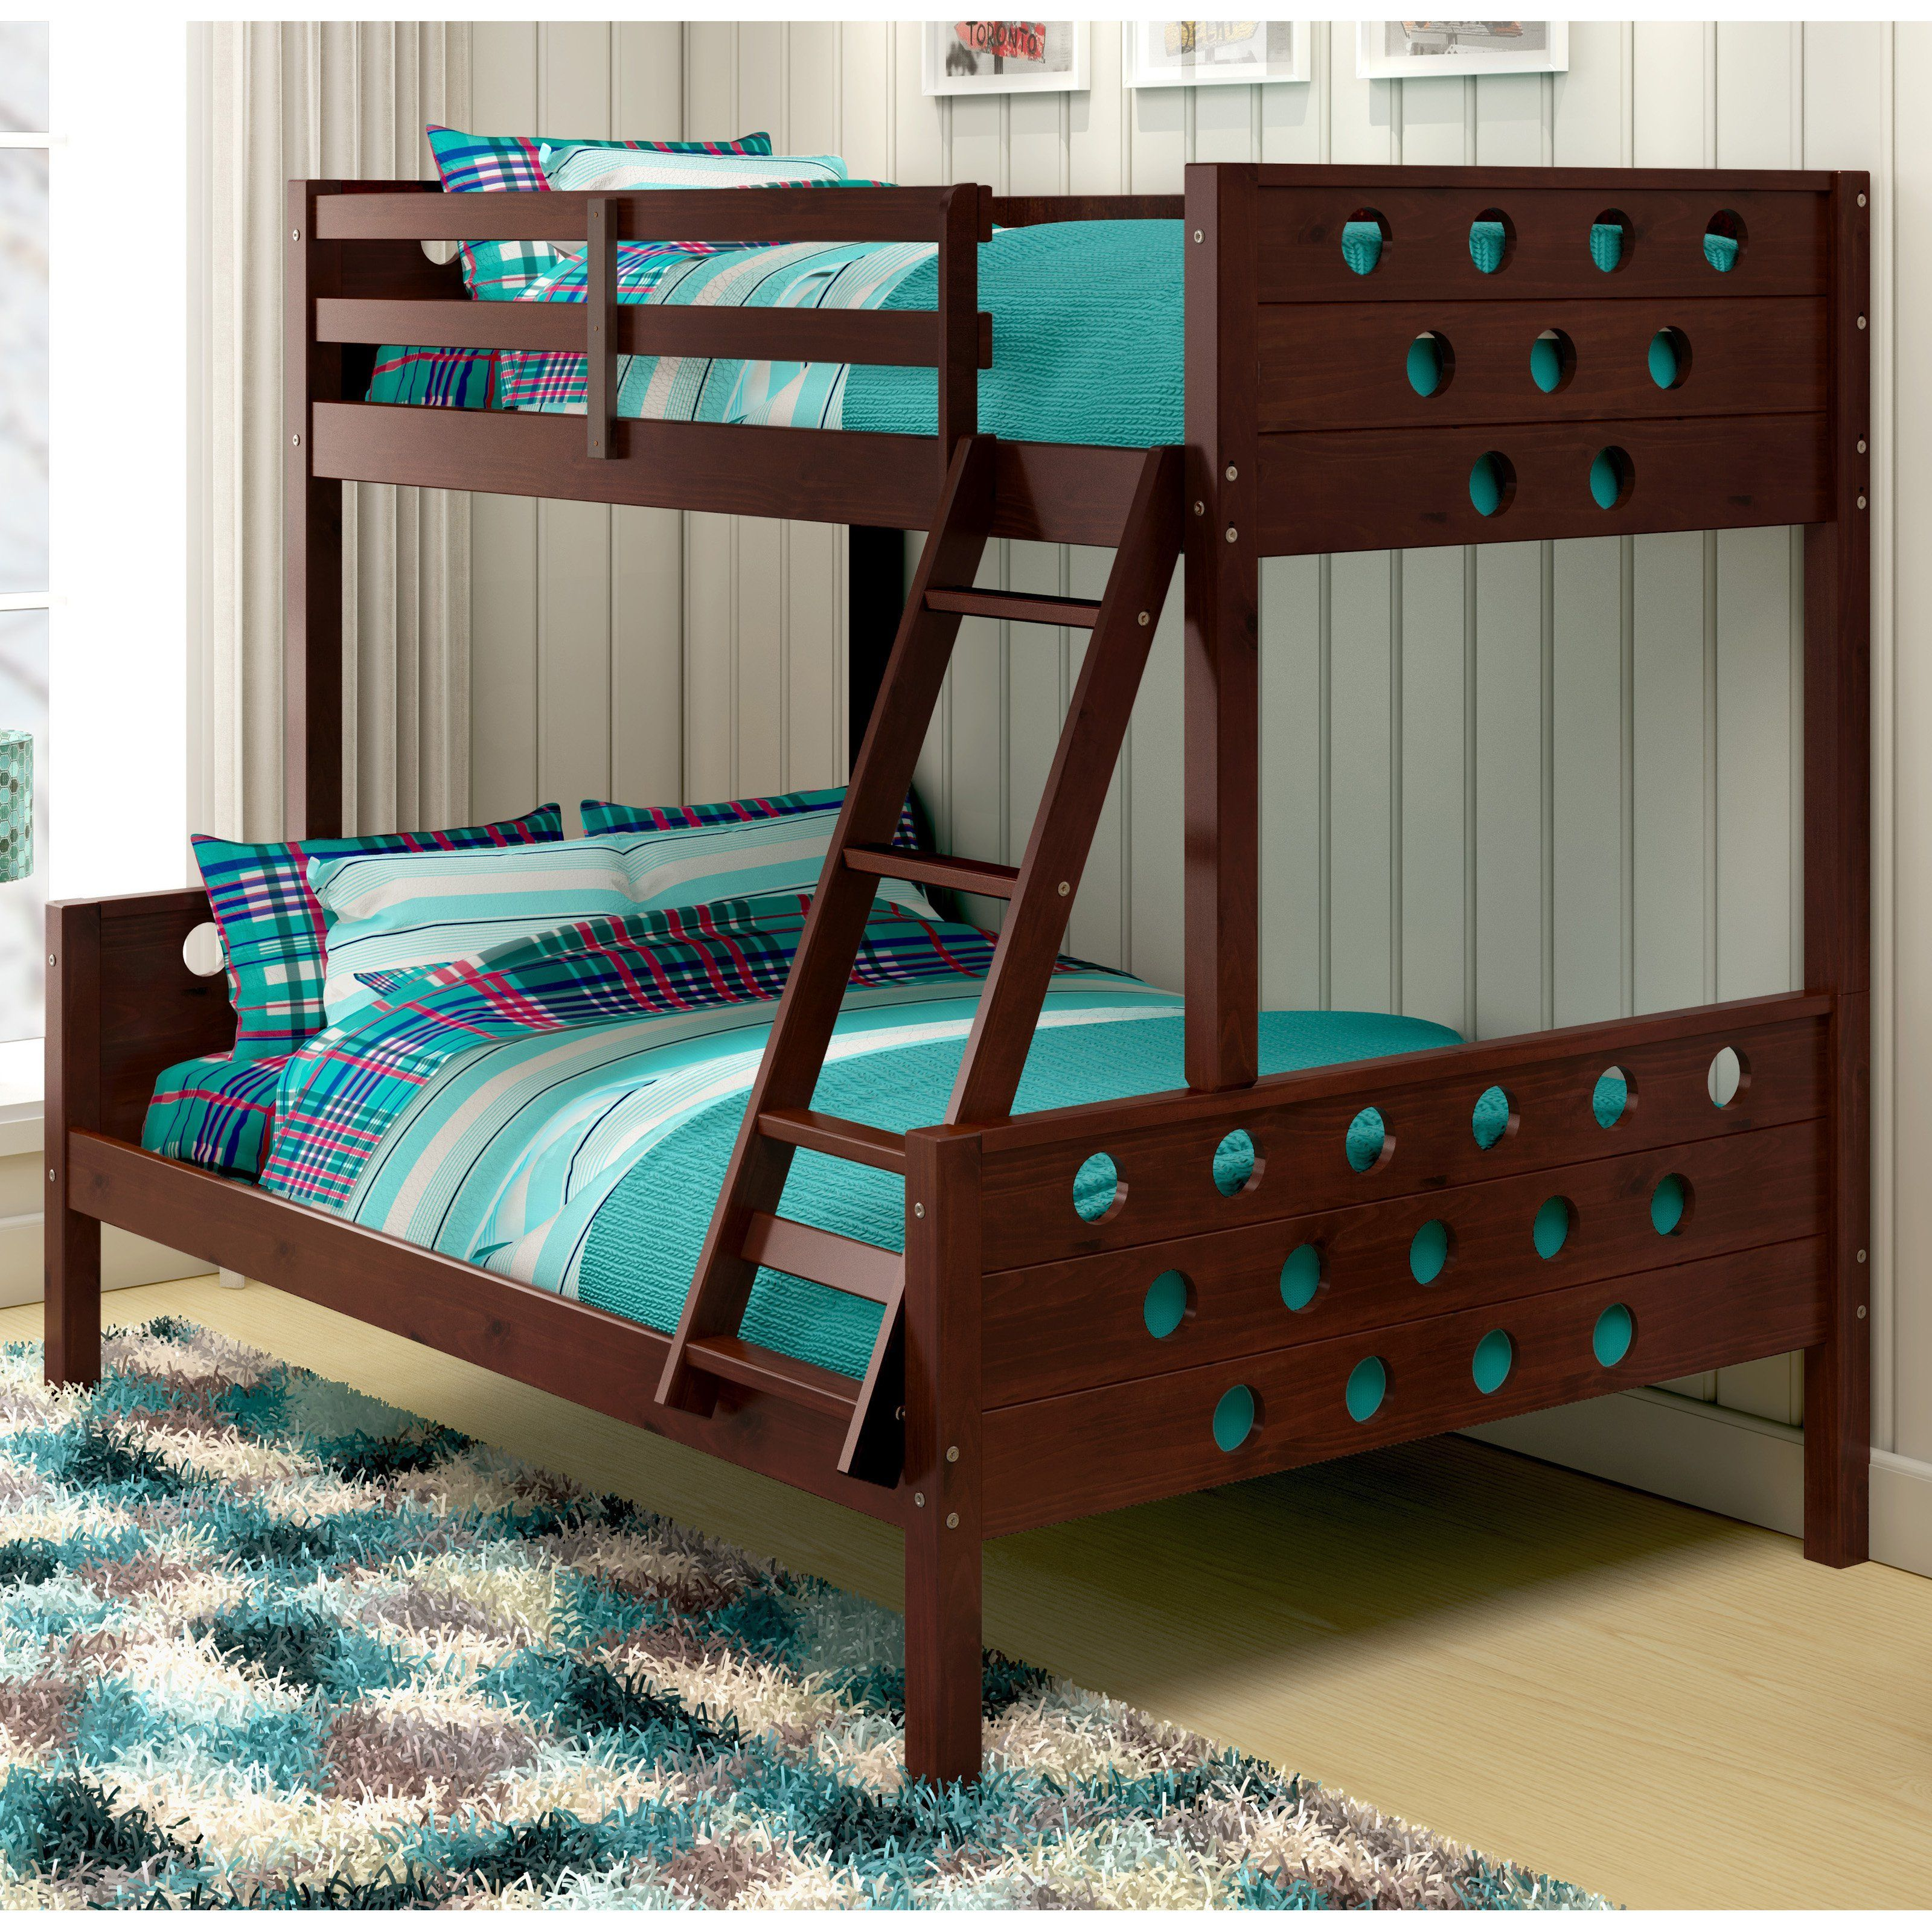 Donco Circles Twin over Full Bunk Bed from